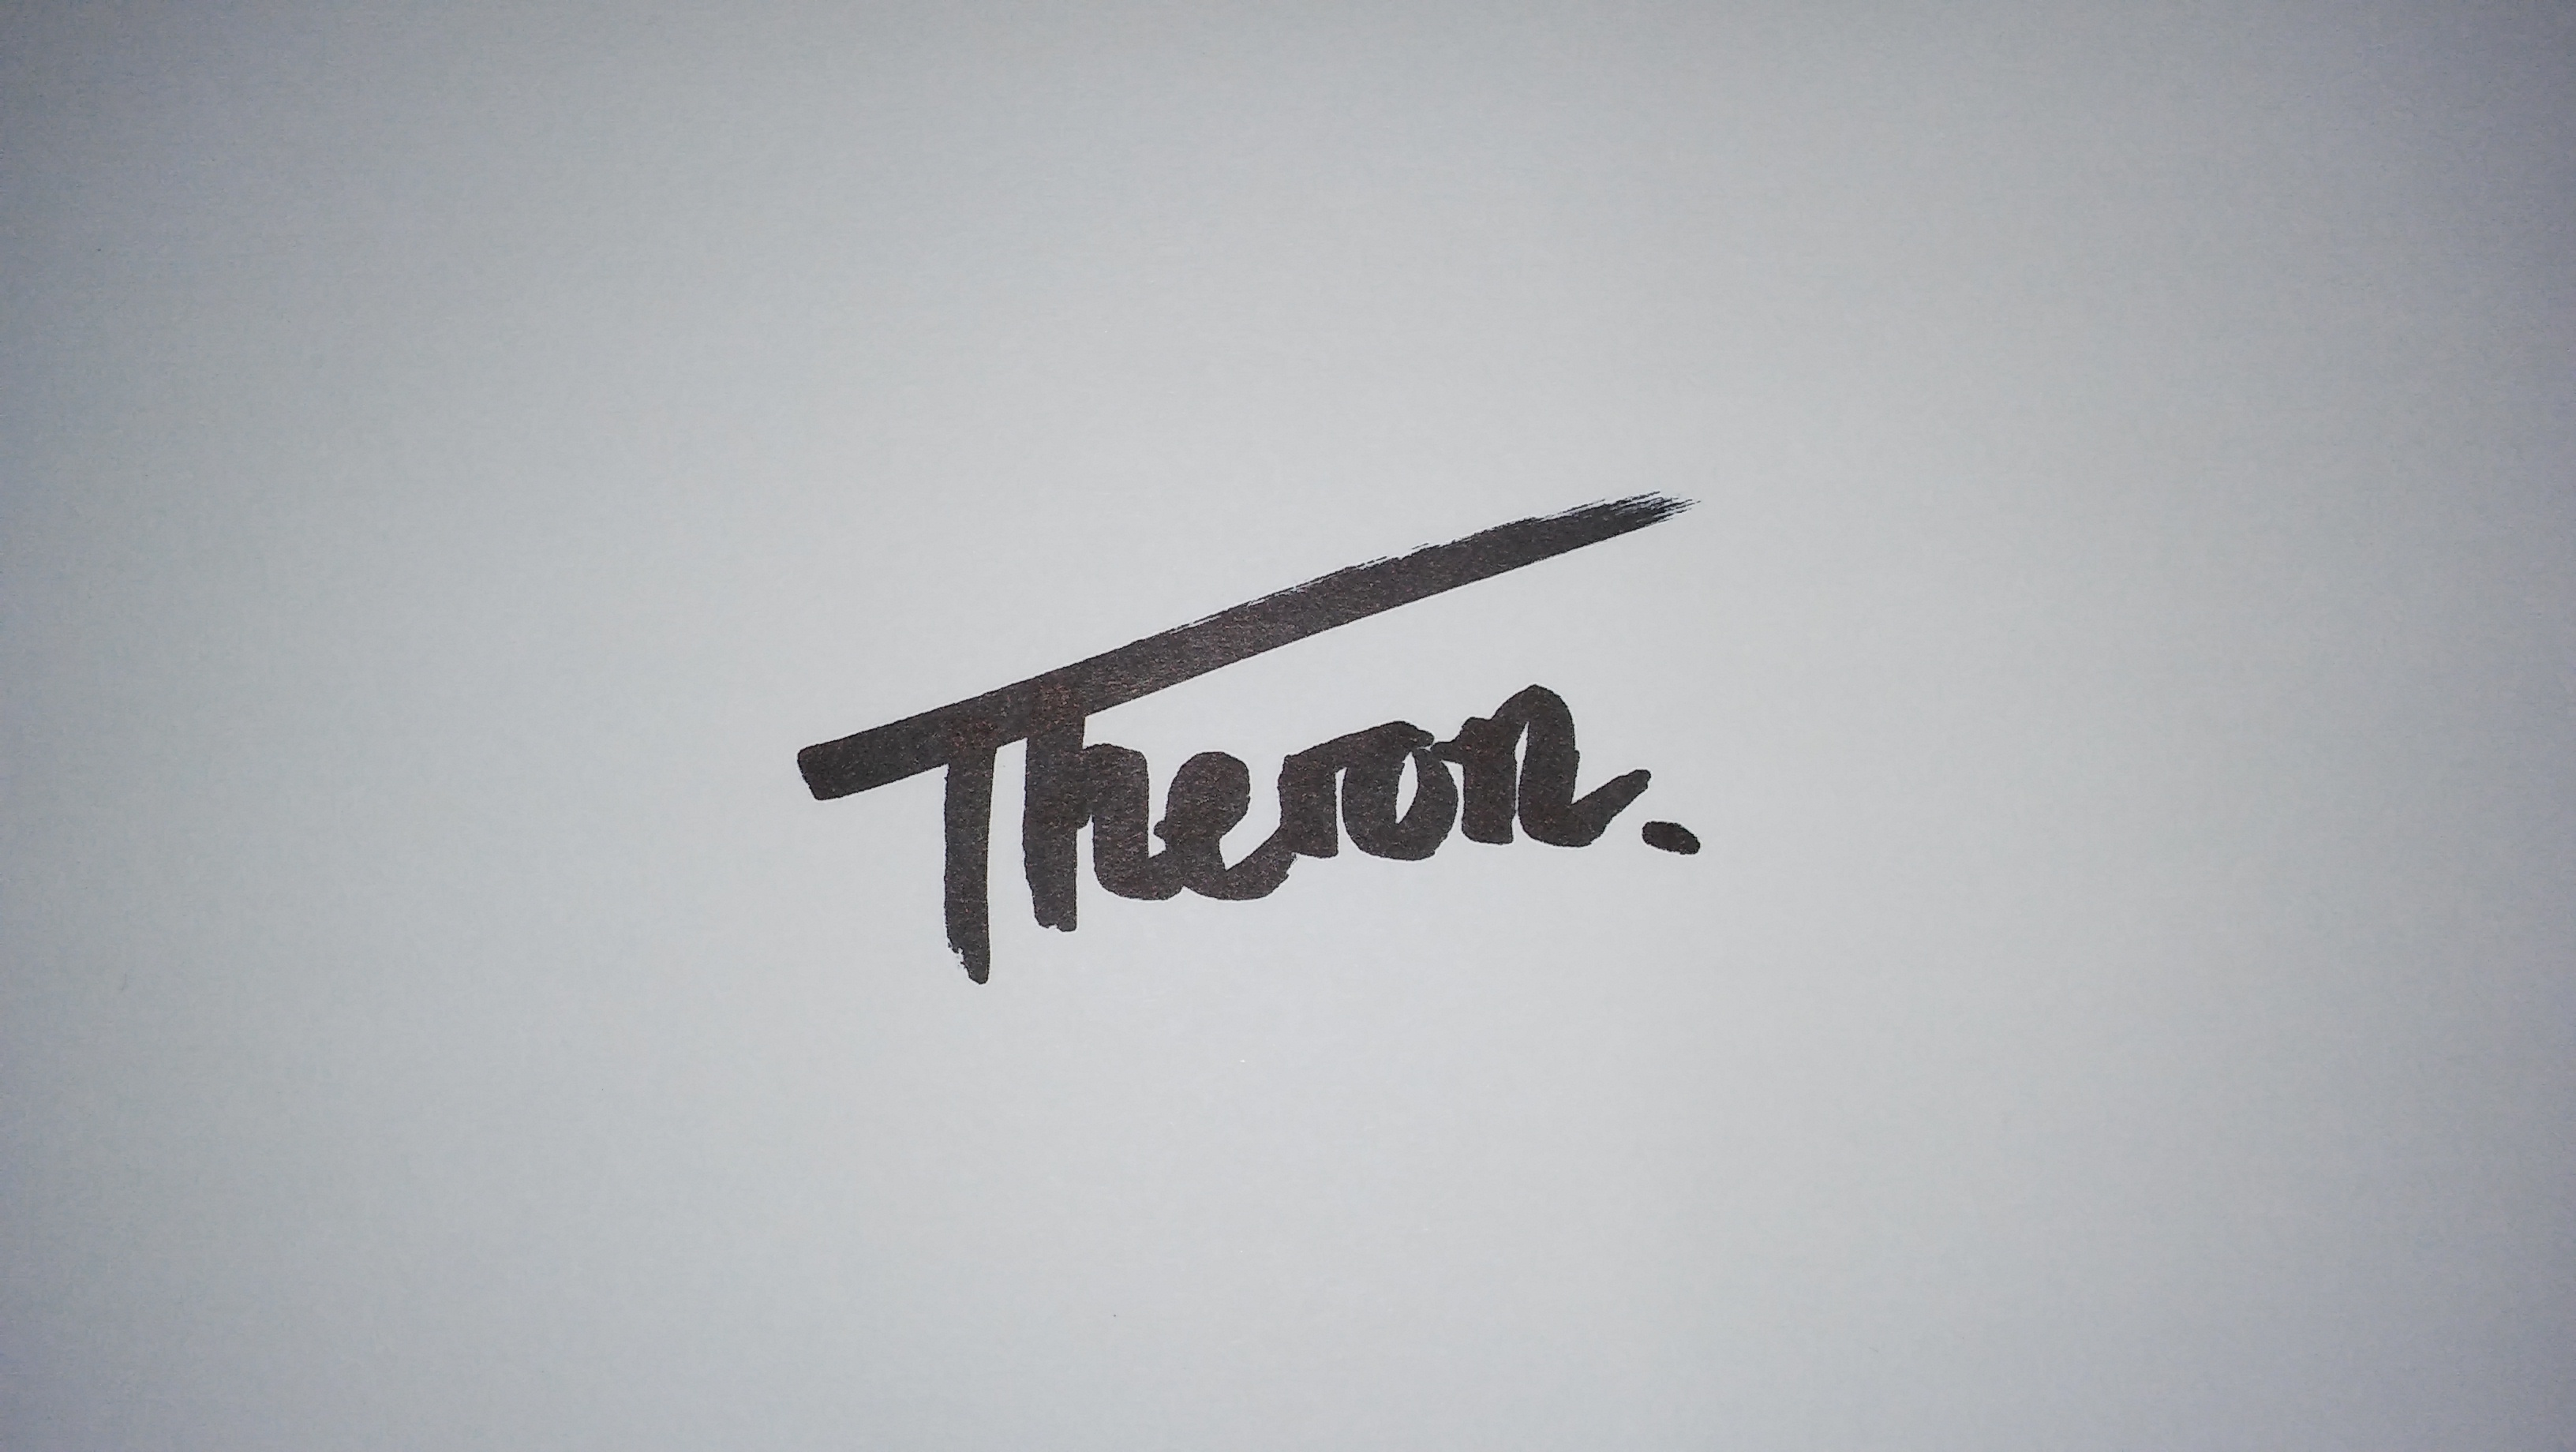 hendrik theron Signature